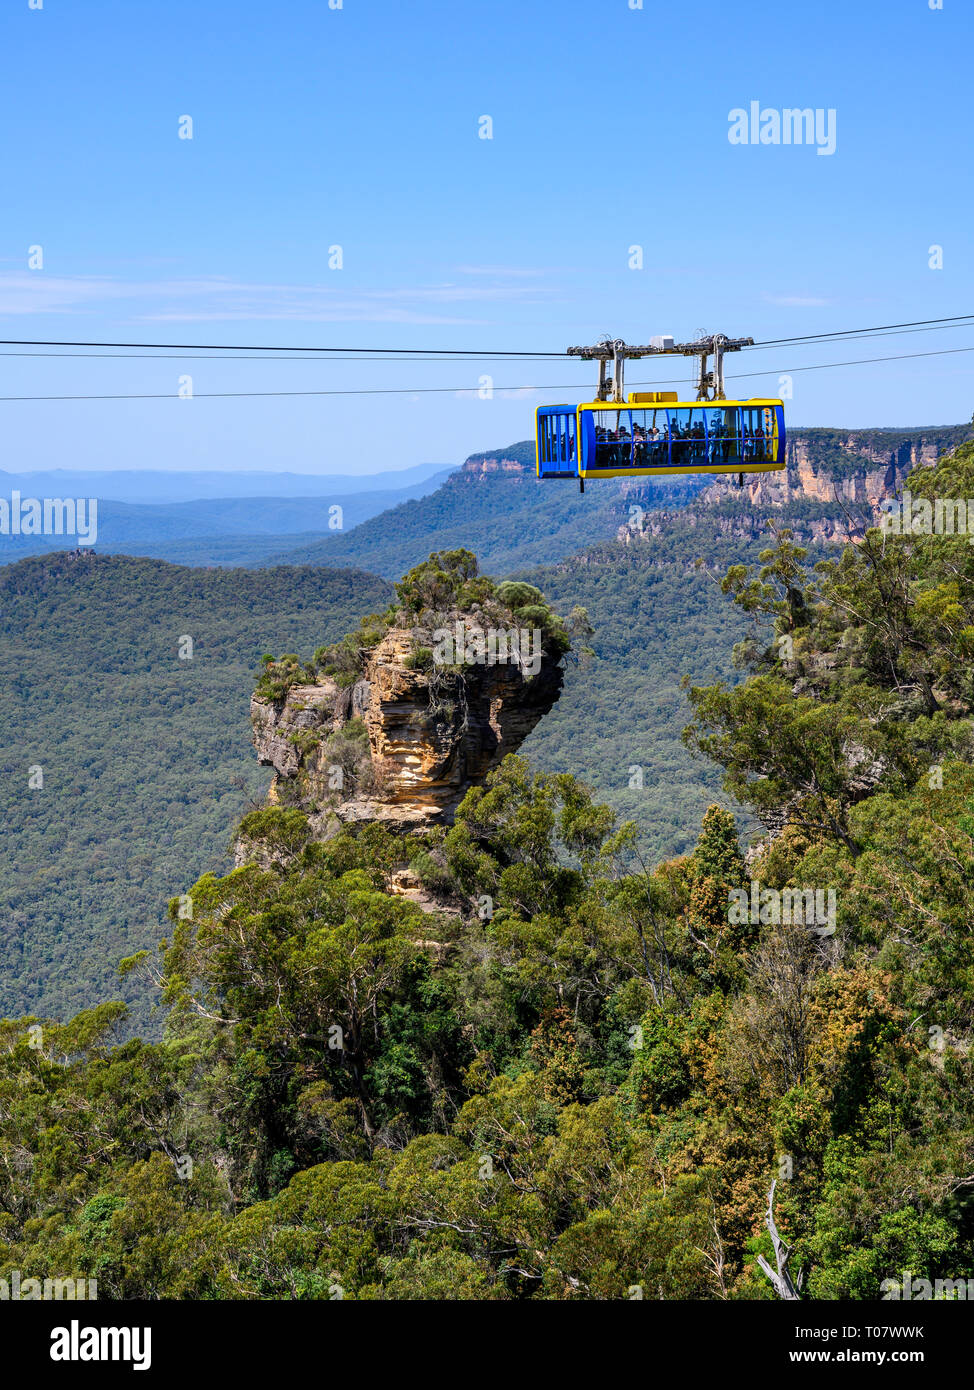 Scenic Skyway cable car at Scenic World tourist attraction, Katoomba, Blue Mountains National Park, New South Wales, Australia. Stock Photo